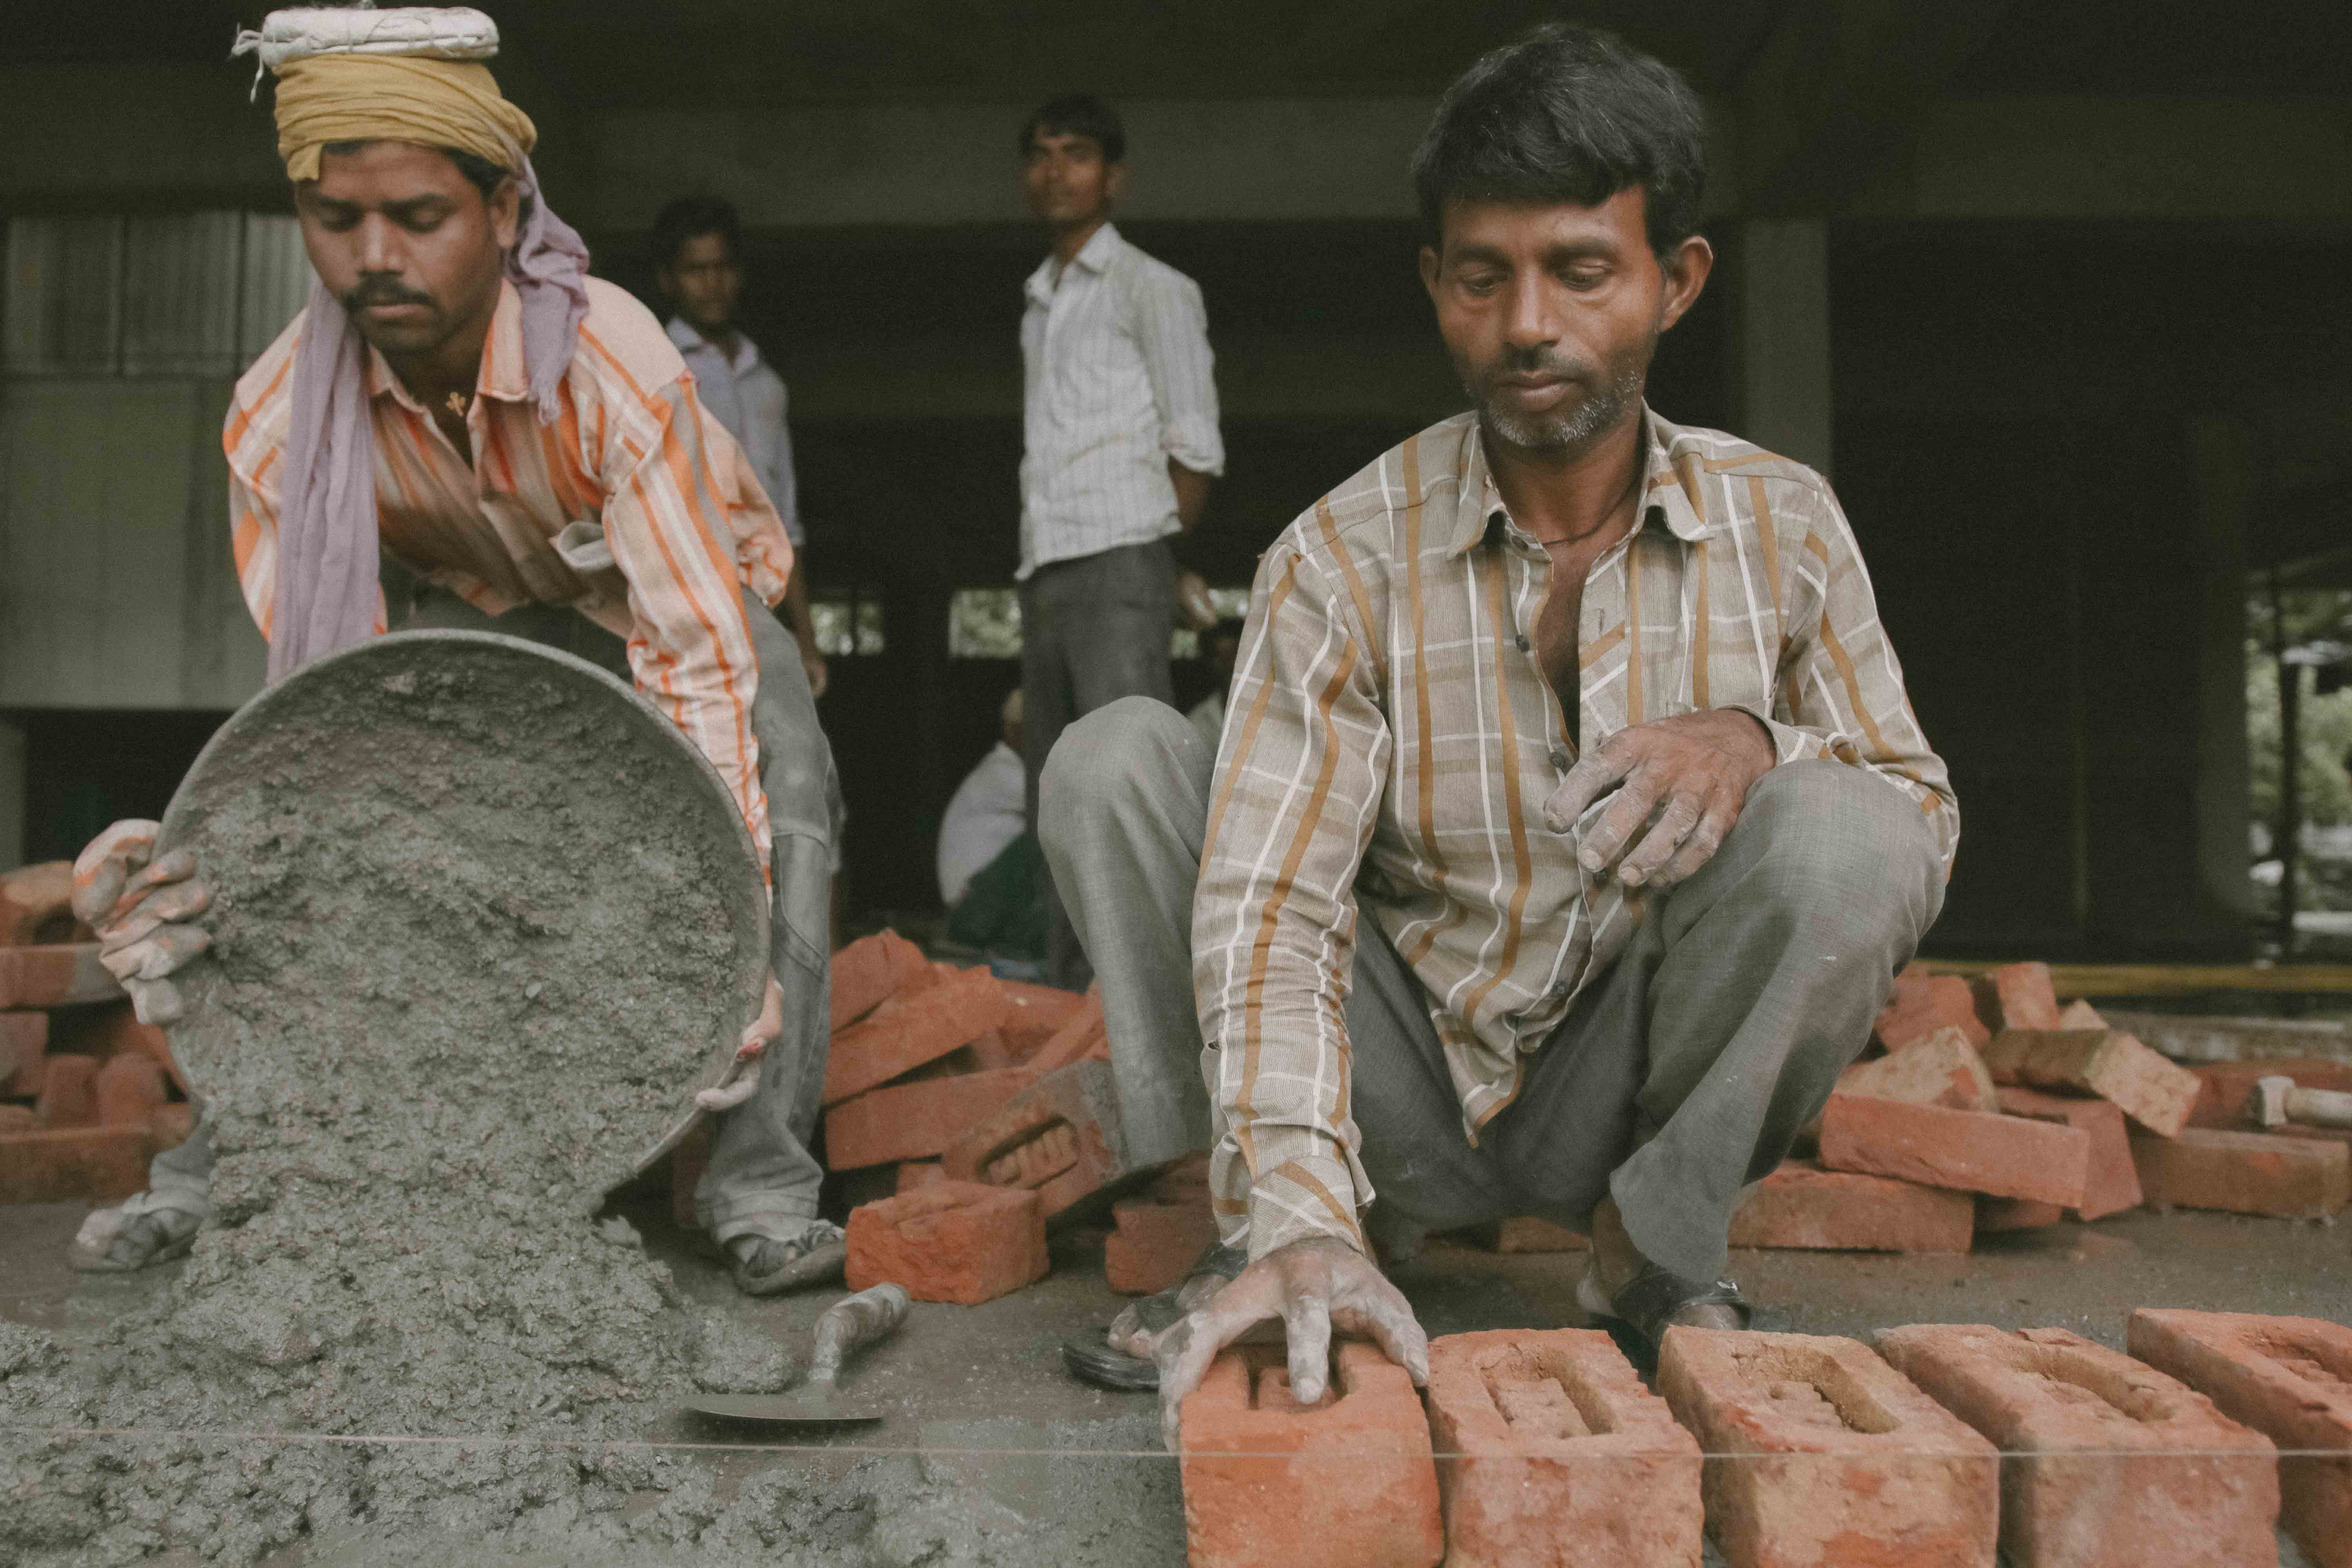 Photo of two men working on brick work from India.